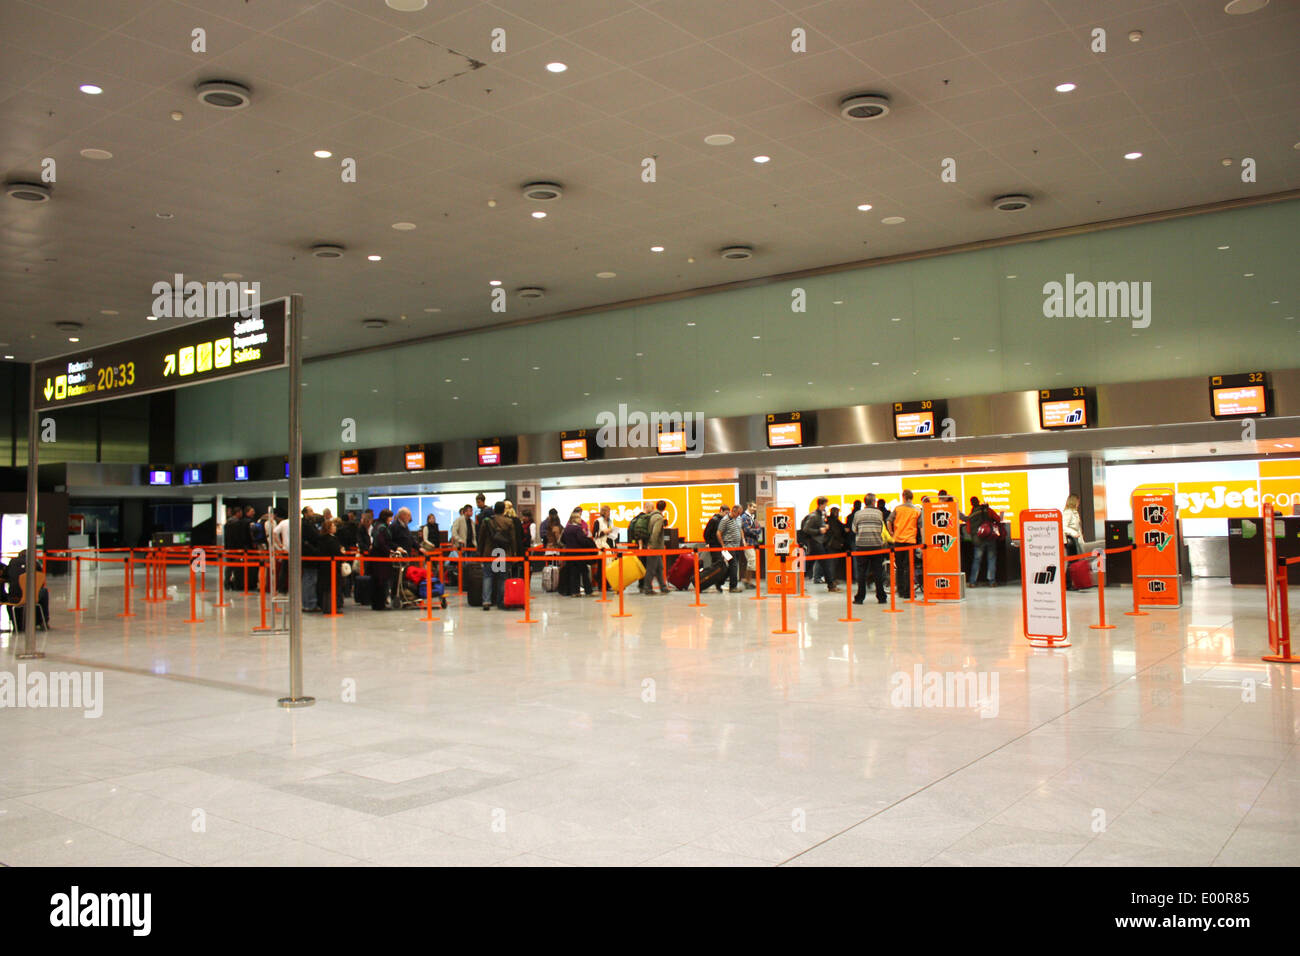 Check in counters at Barcelona airport - Stock Image